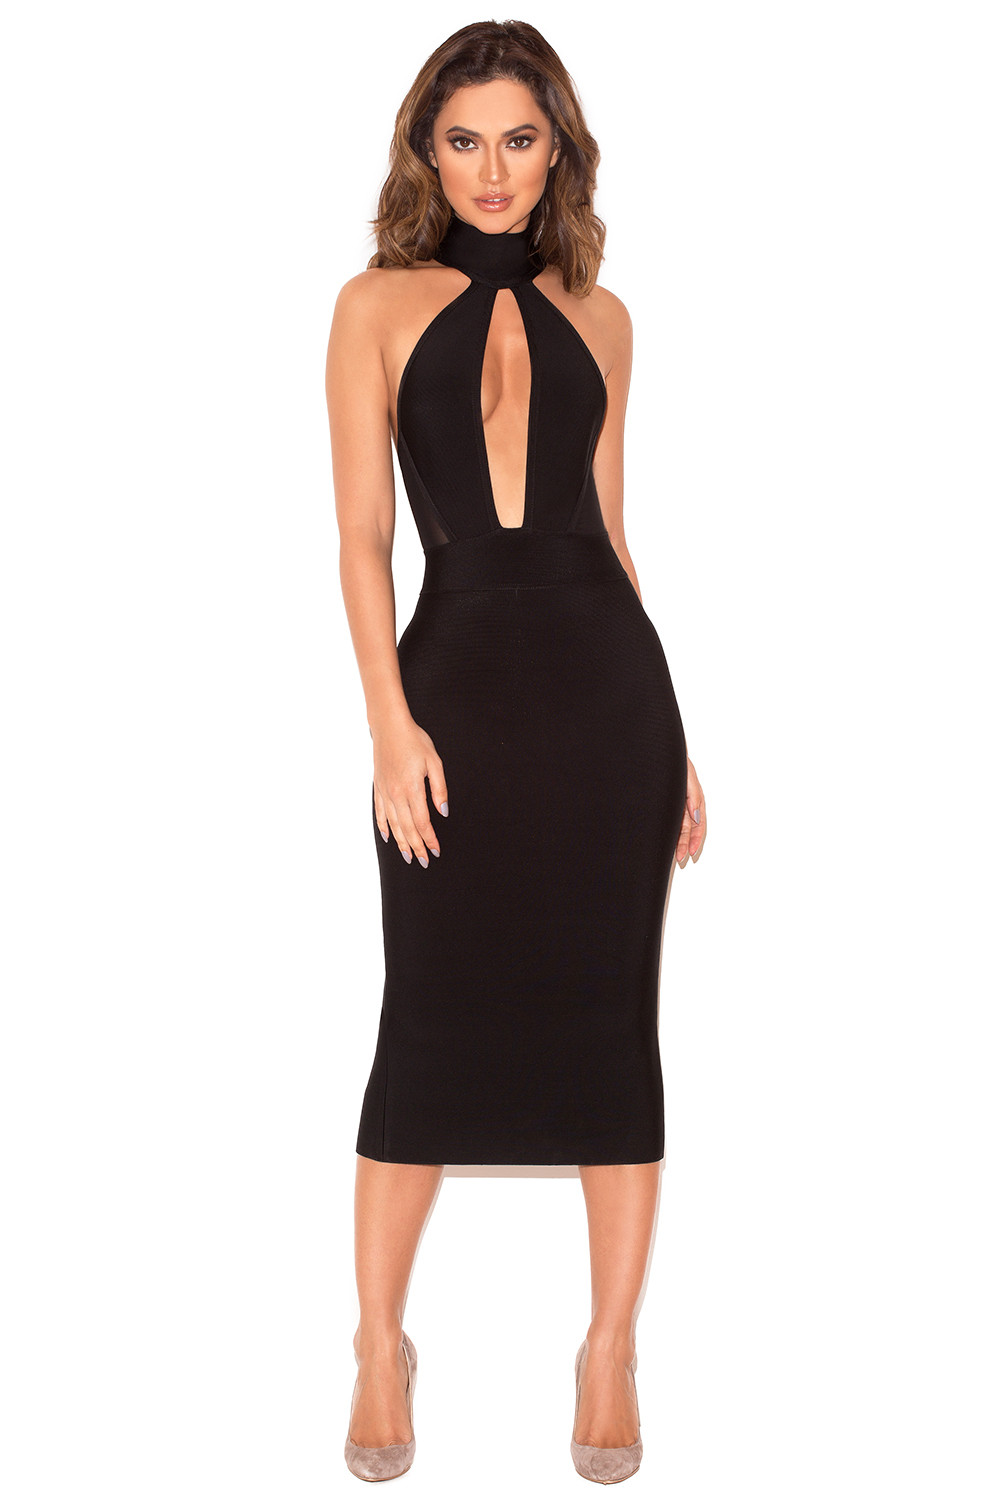 Clothing  Bandage Dresses  u0026#39;Alejandrau0026#39; Black Halter Backless Bandage Dress